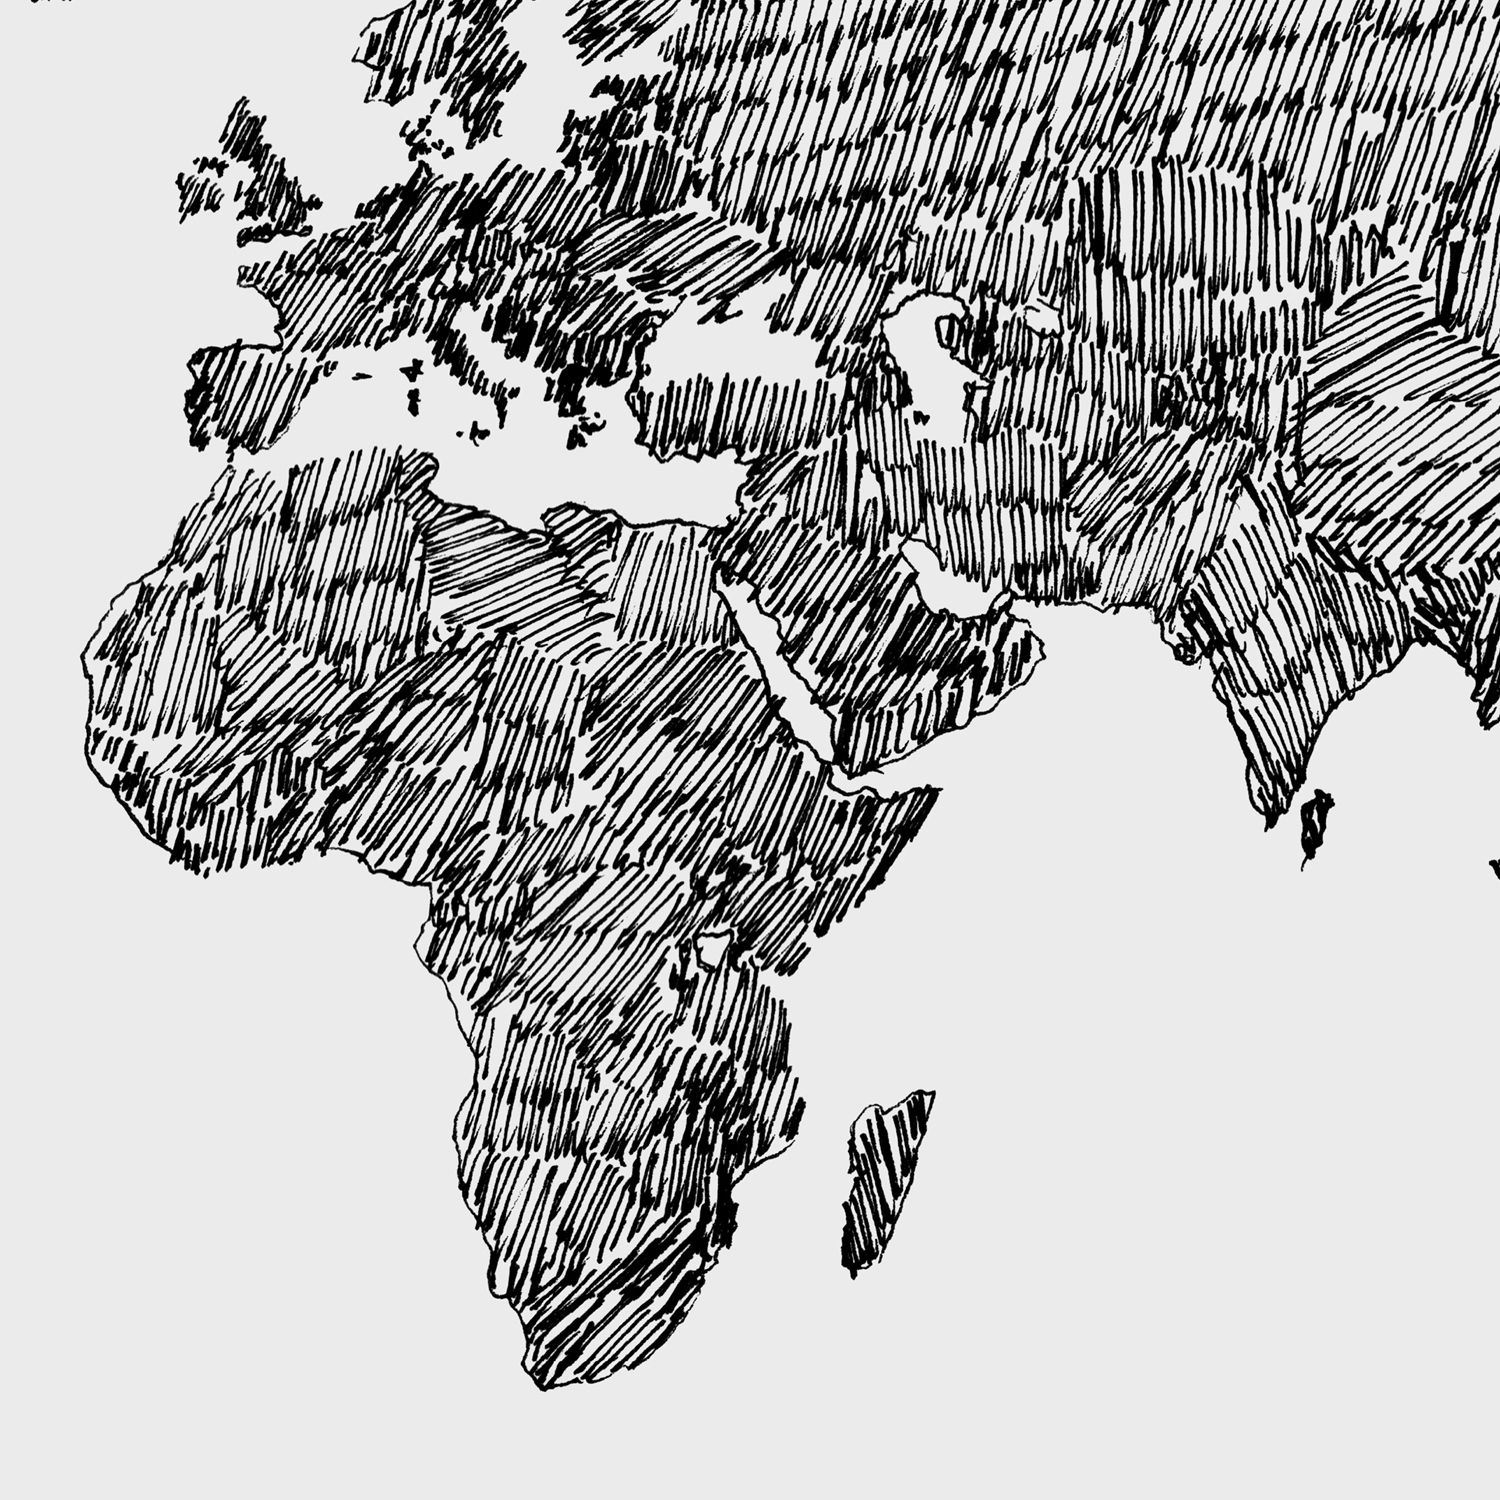 World map art print printable world map large print black and printable wall art minimalist world map print hand sketched doddle art sketch print gumiabroncs Image collections